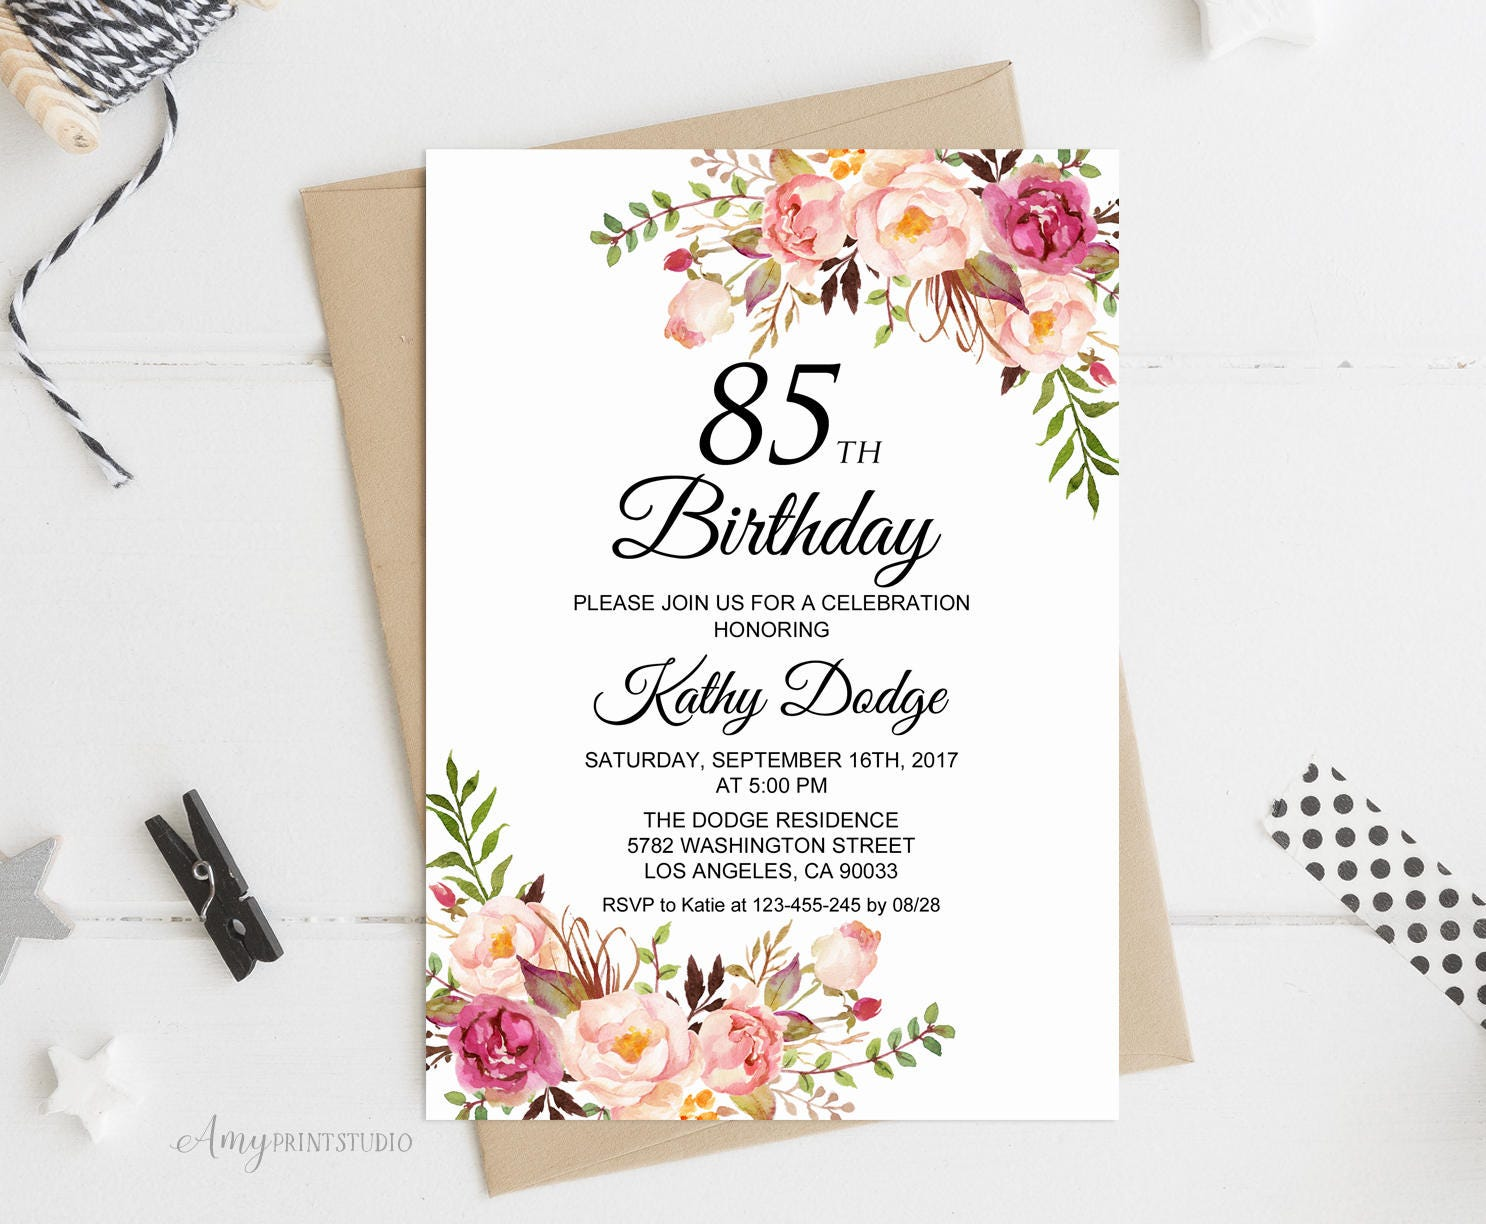 85th Birthday Invitation Floral Women